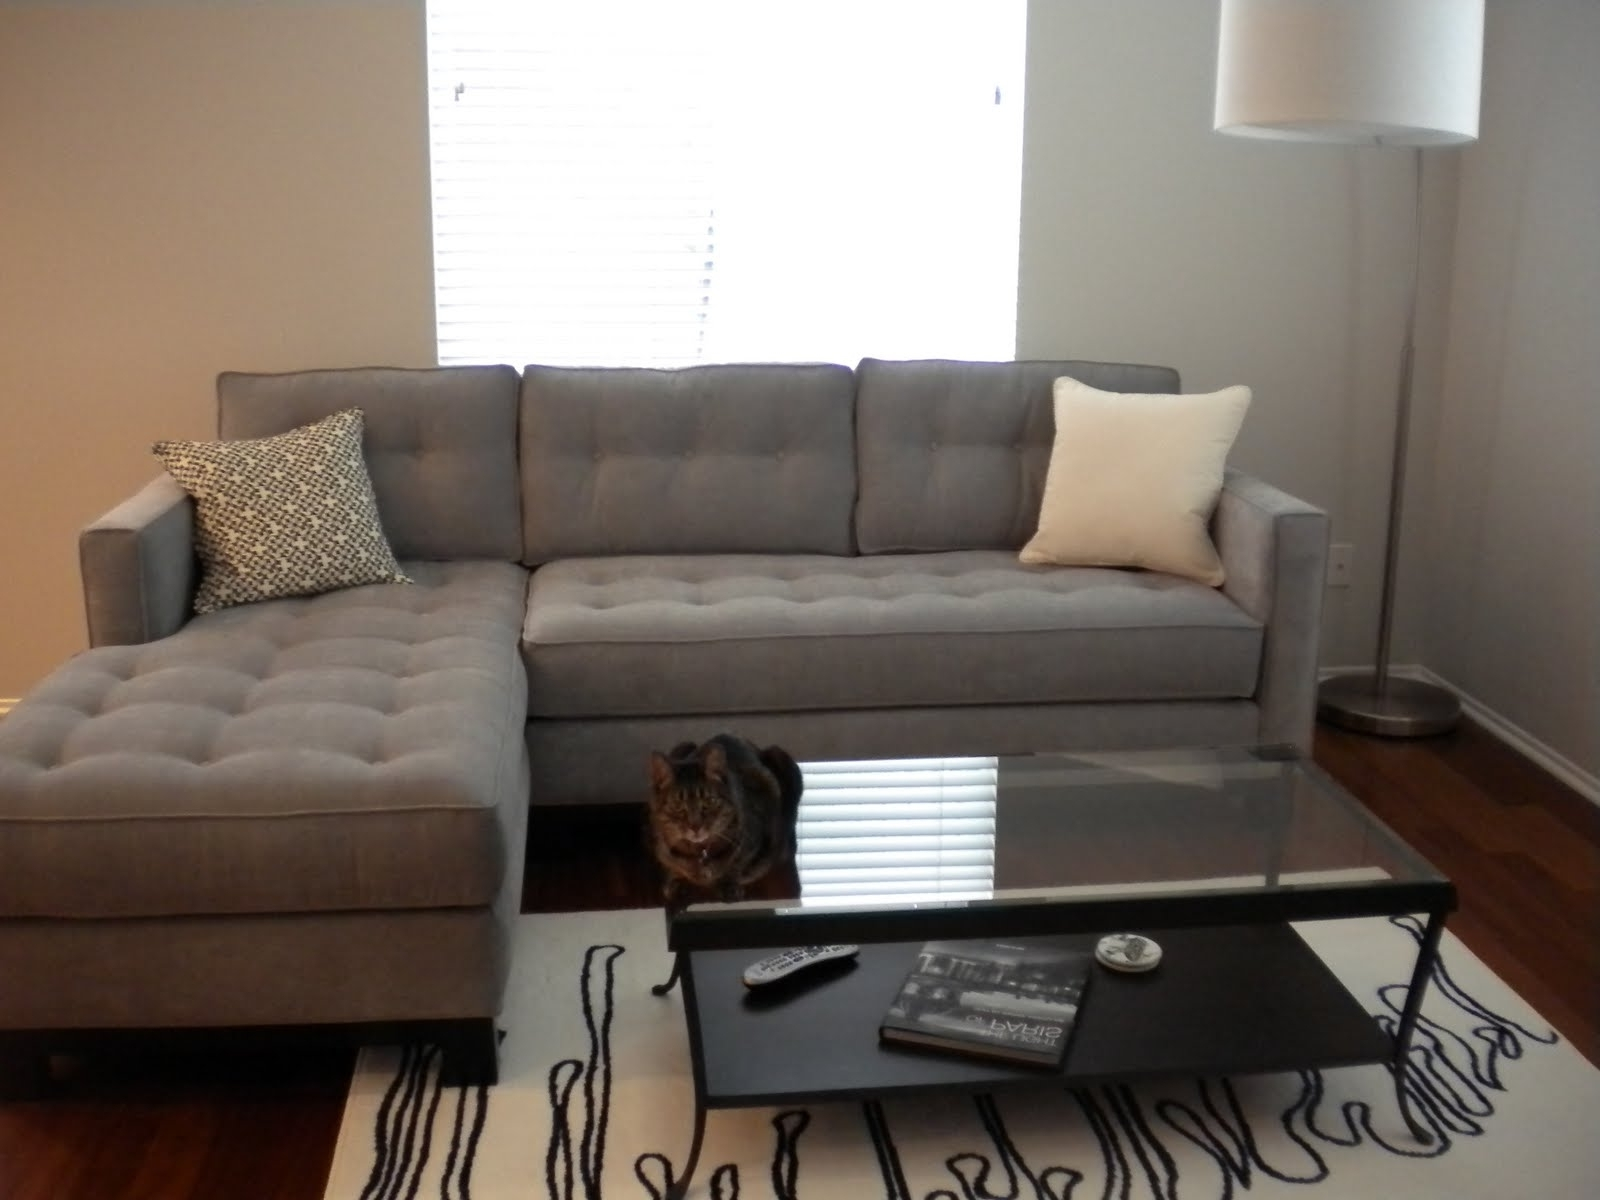 Collection Sectional Sofas Rochester Ny – Mediasupload Inside 2019 Rochester Ny Sectional Sofas (View 7 of 20)